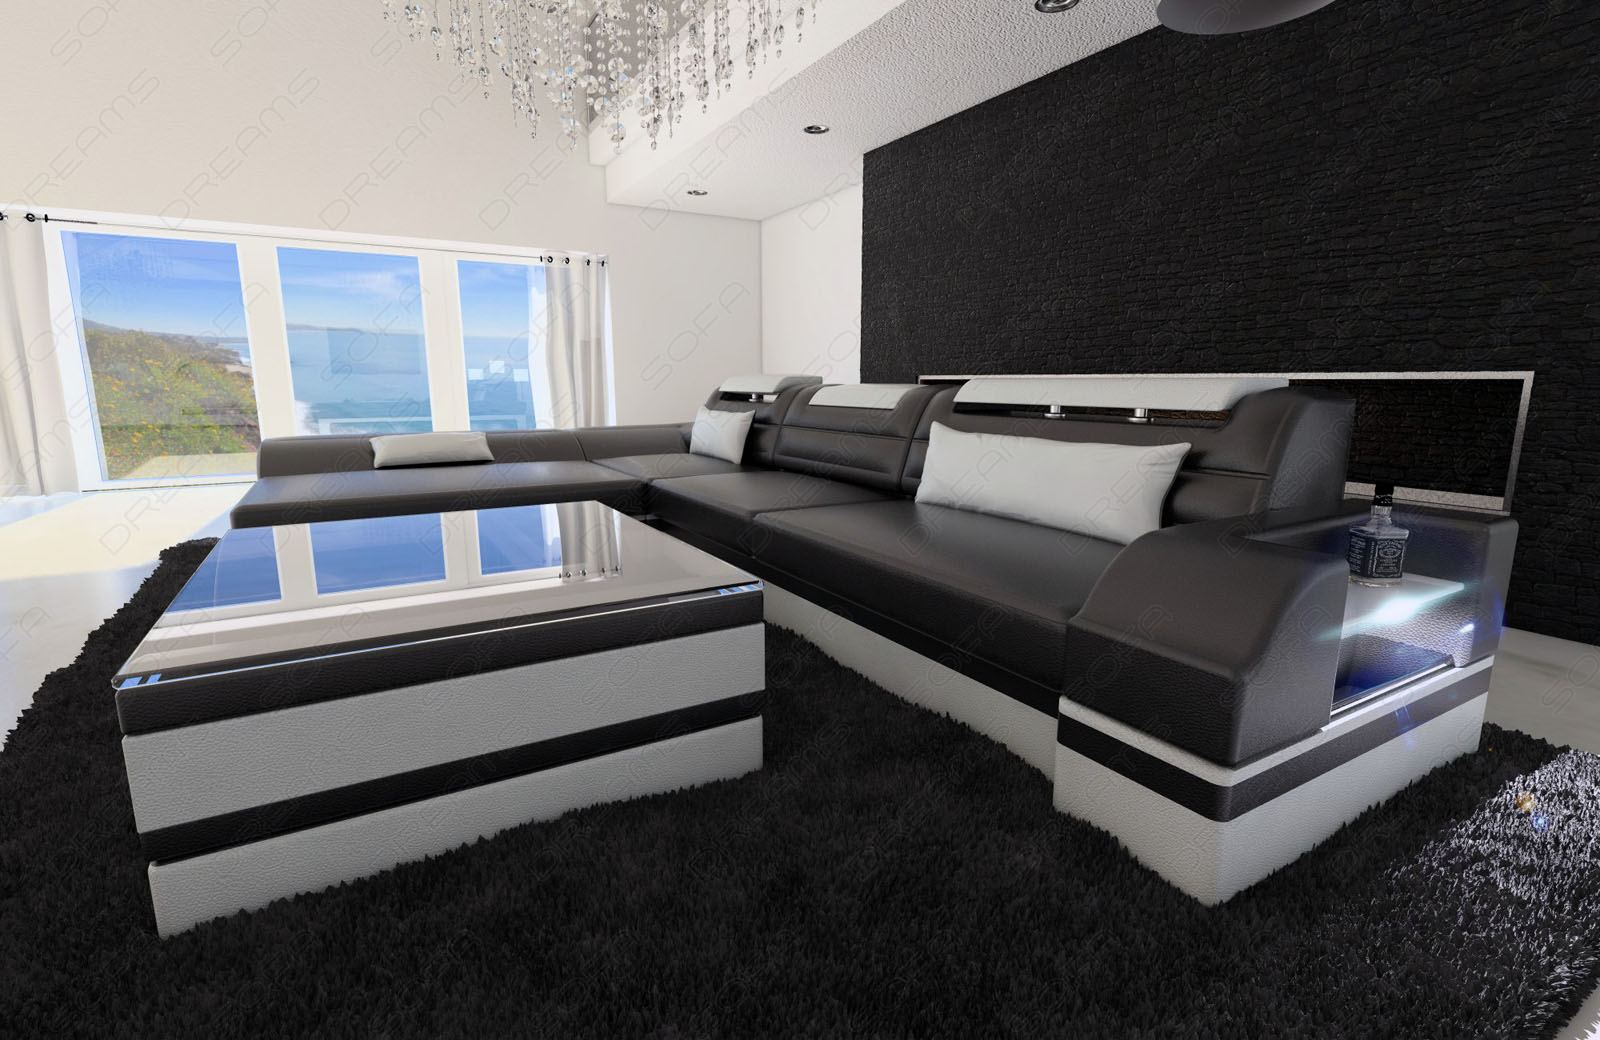 echtledersofa monza l form schwarz weiss ecksofa mit led. Black Bedroom Furniture Sets. Home Design Ideas